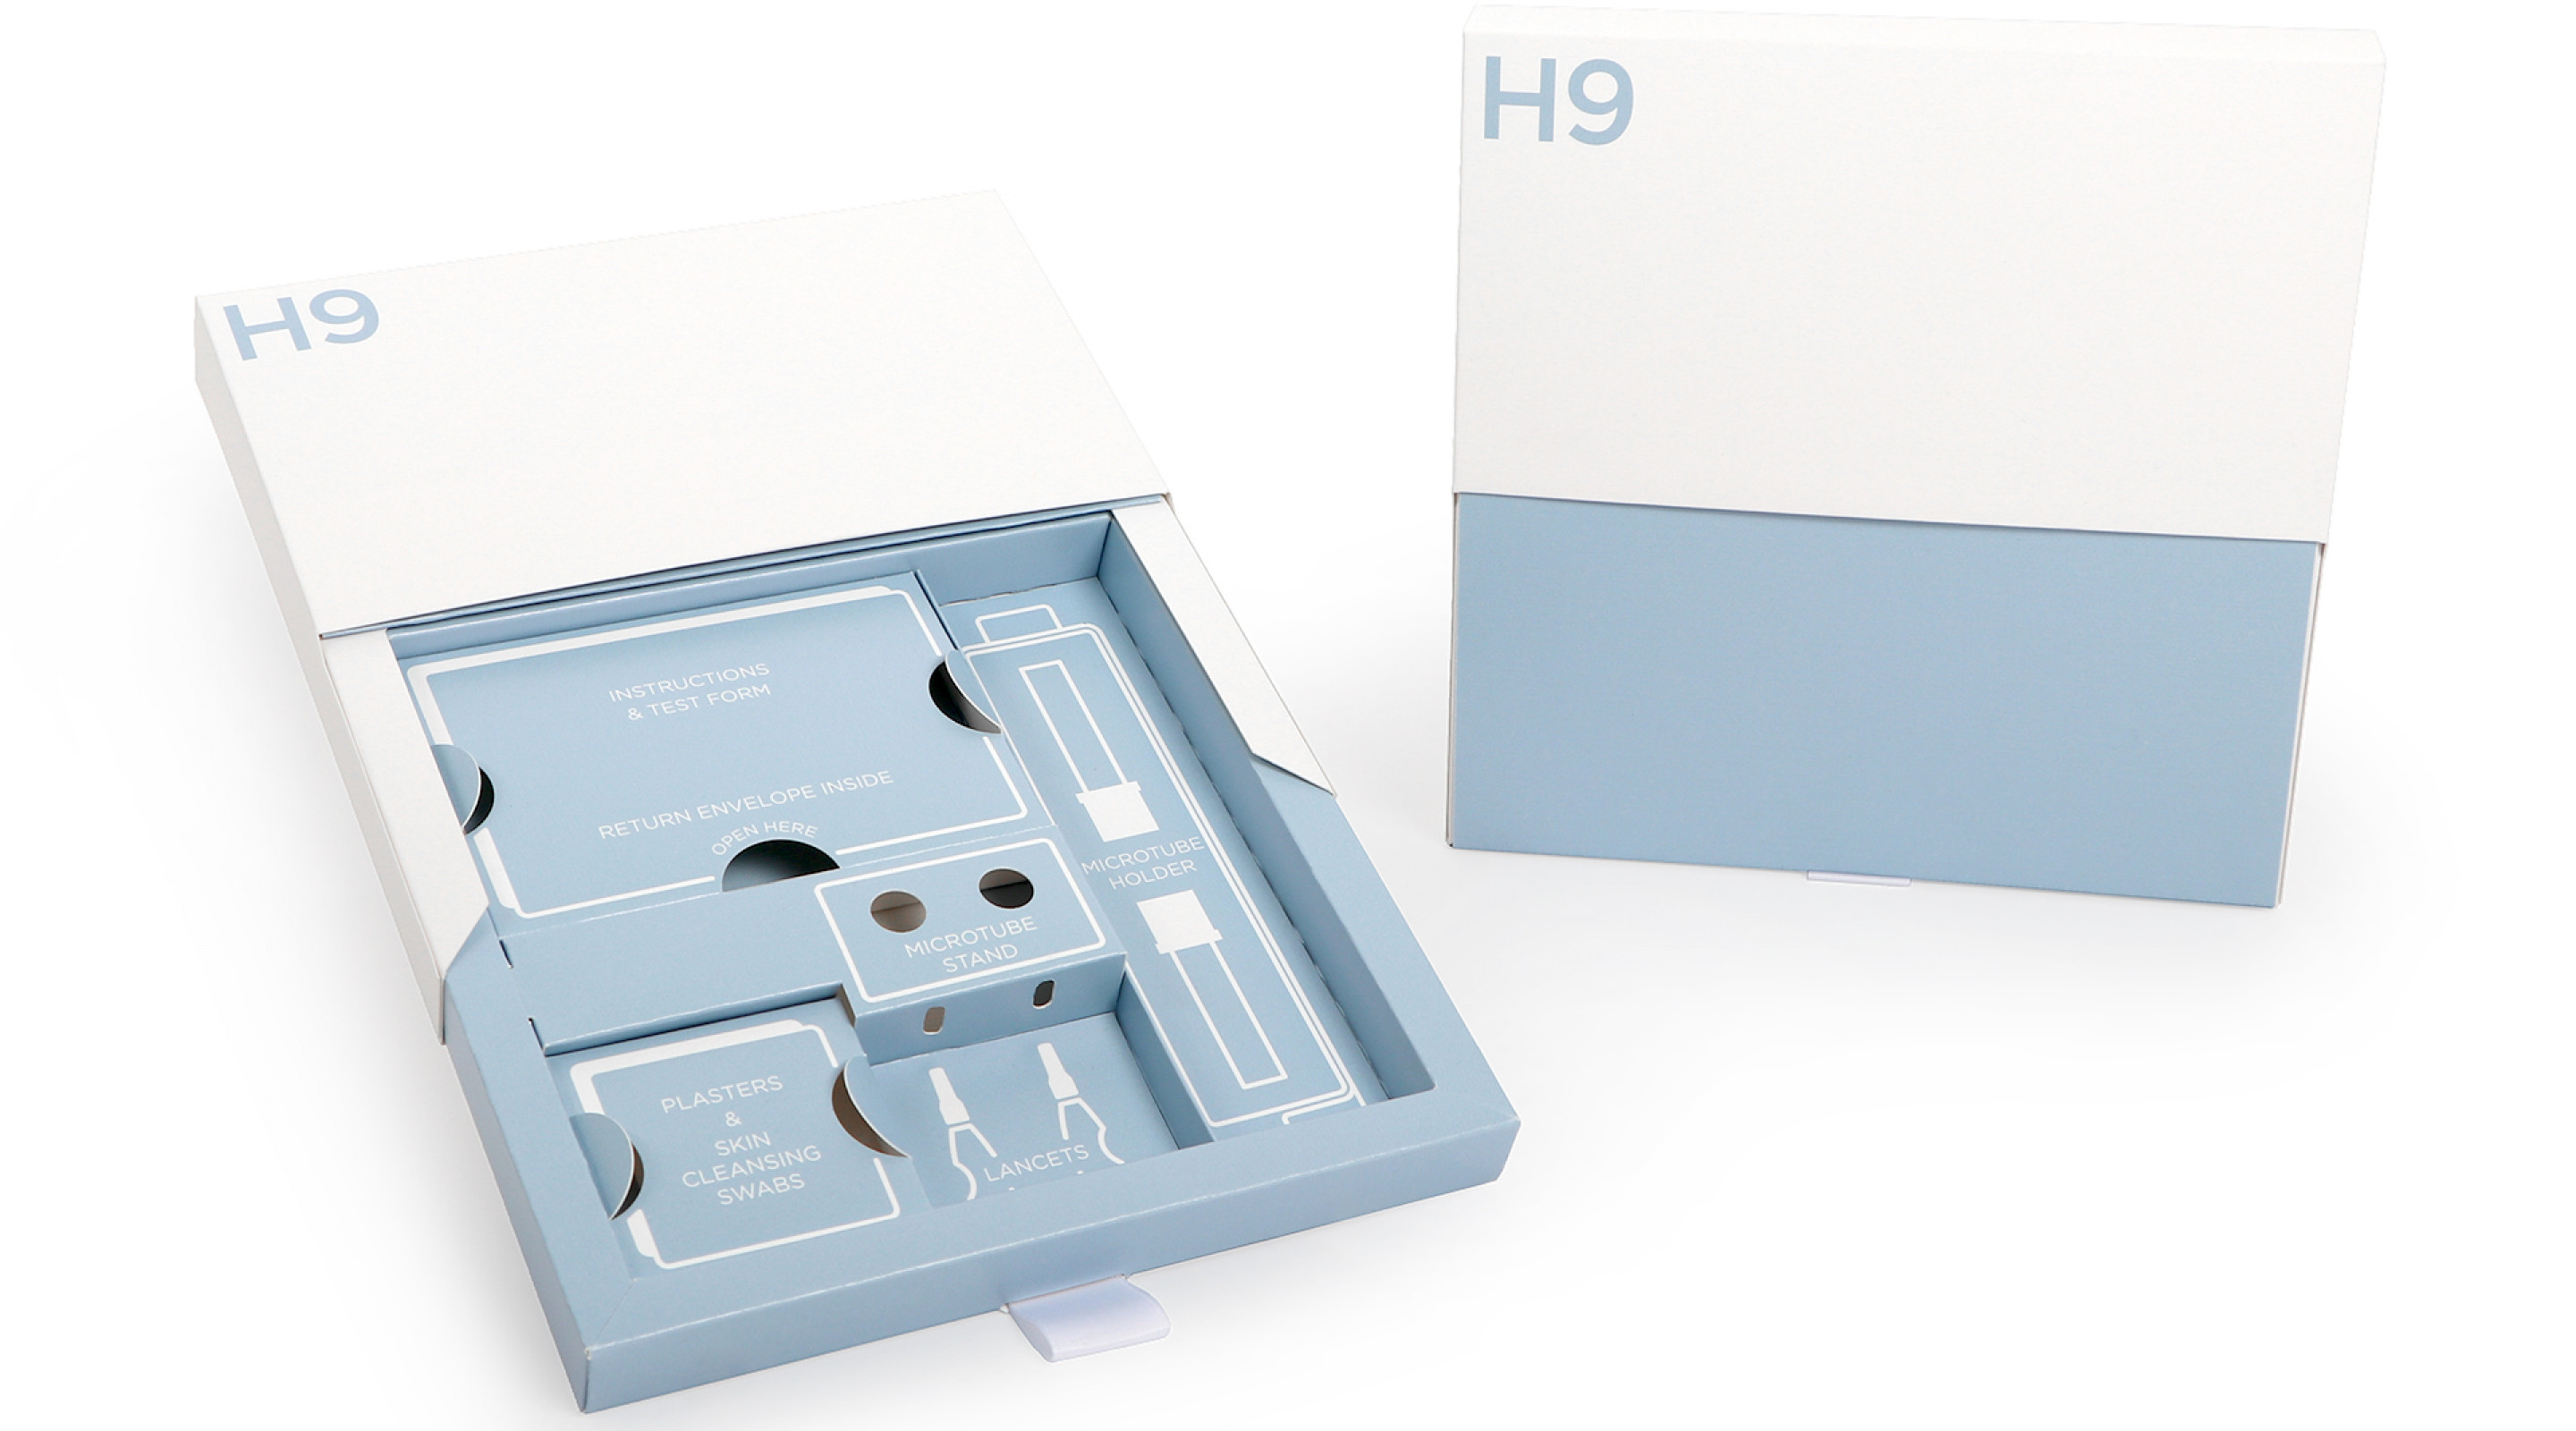 H9 Testing Kit Pack - NEW - Blood Test, Swabs & More